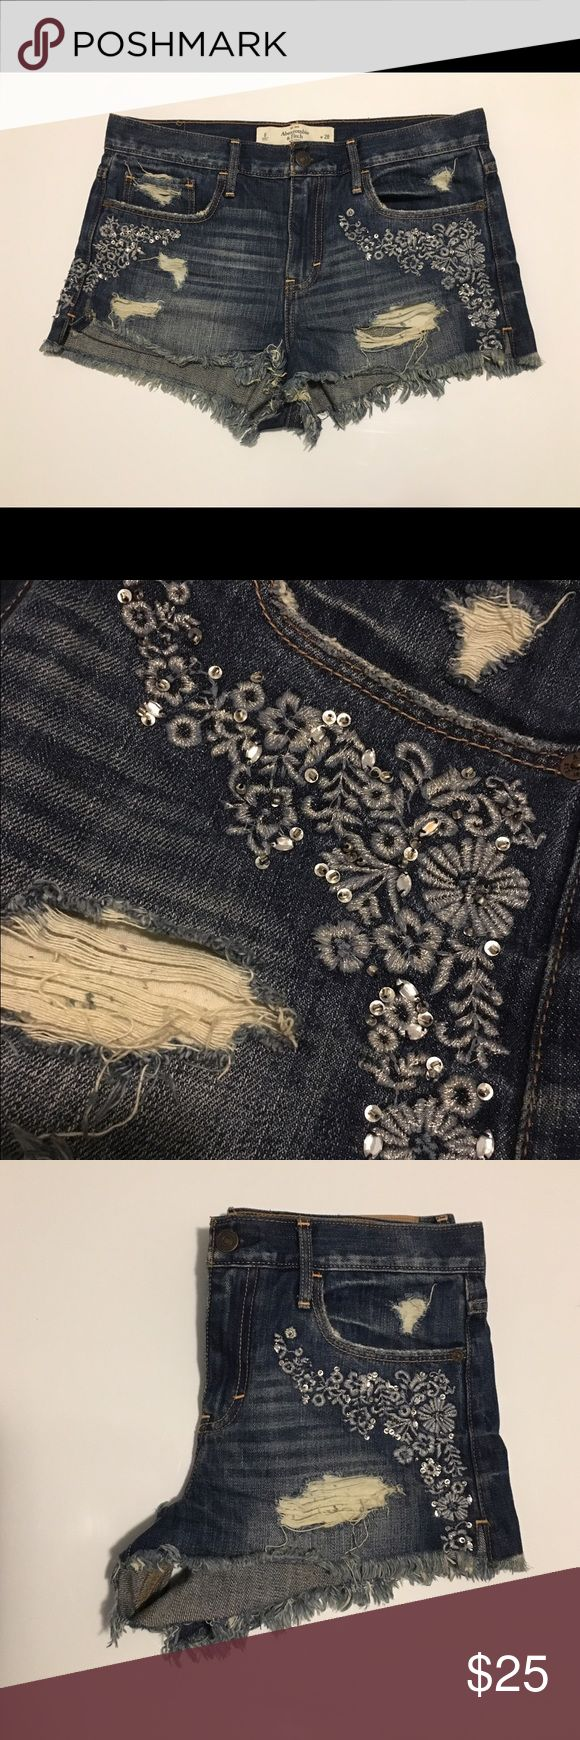 Abercrombie and Fitch shorts High rise Abercrombie and Fitch Shorts with decorative pockets. Abercrombie & Fitch Shorts Jean Shorts